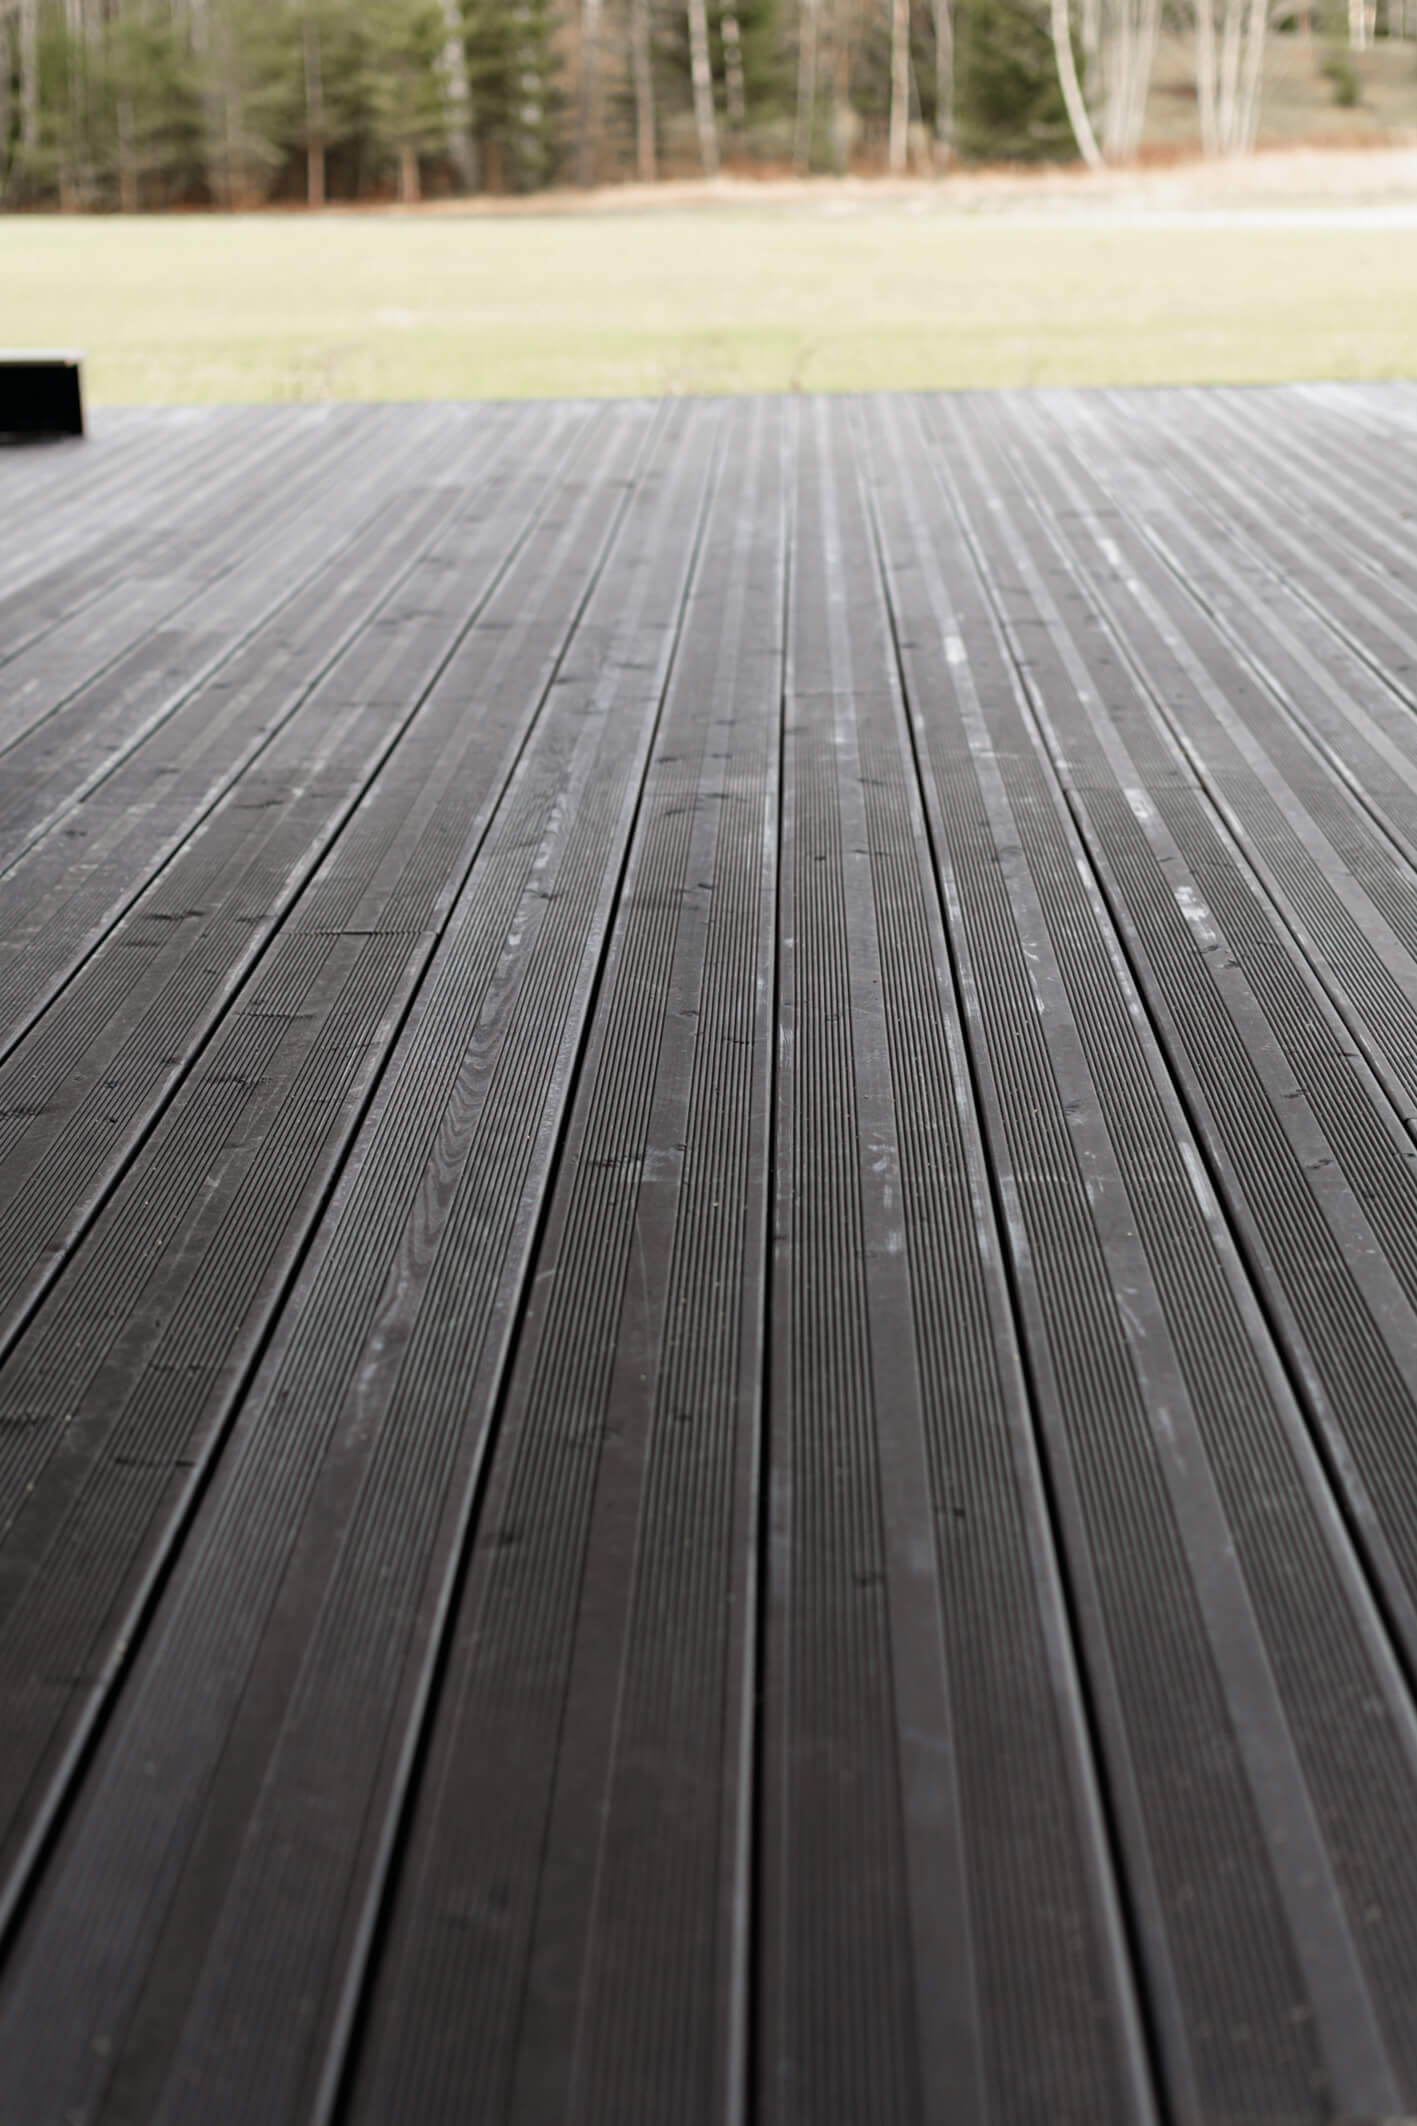 Beautiful wooden deck finished with Rubio Monocoat hardwax oil wood finish.